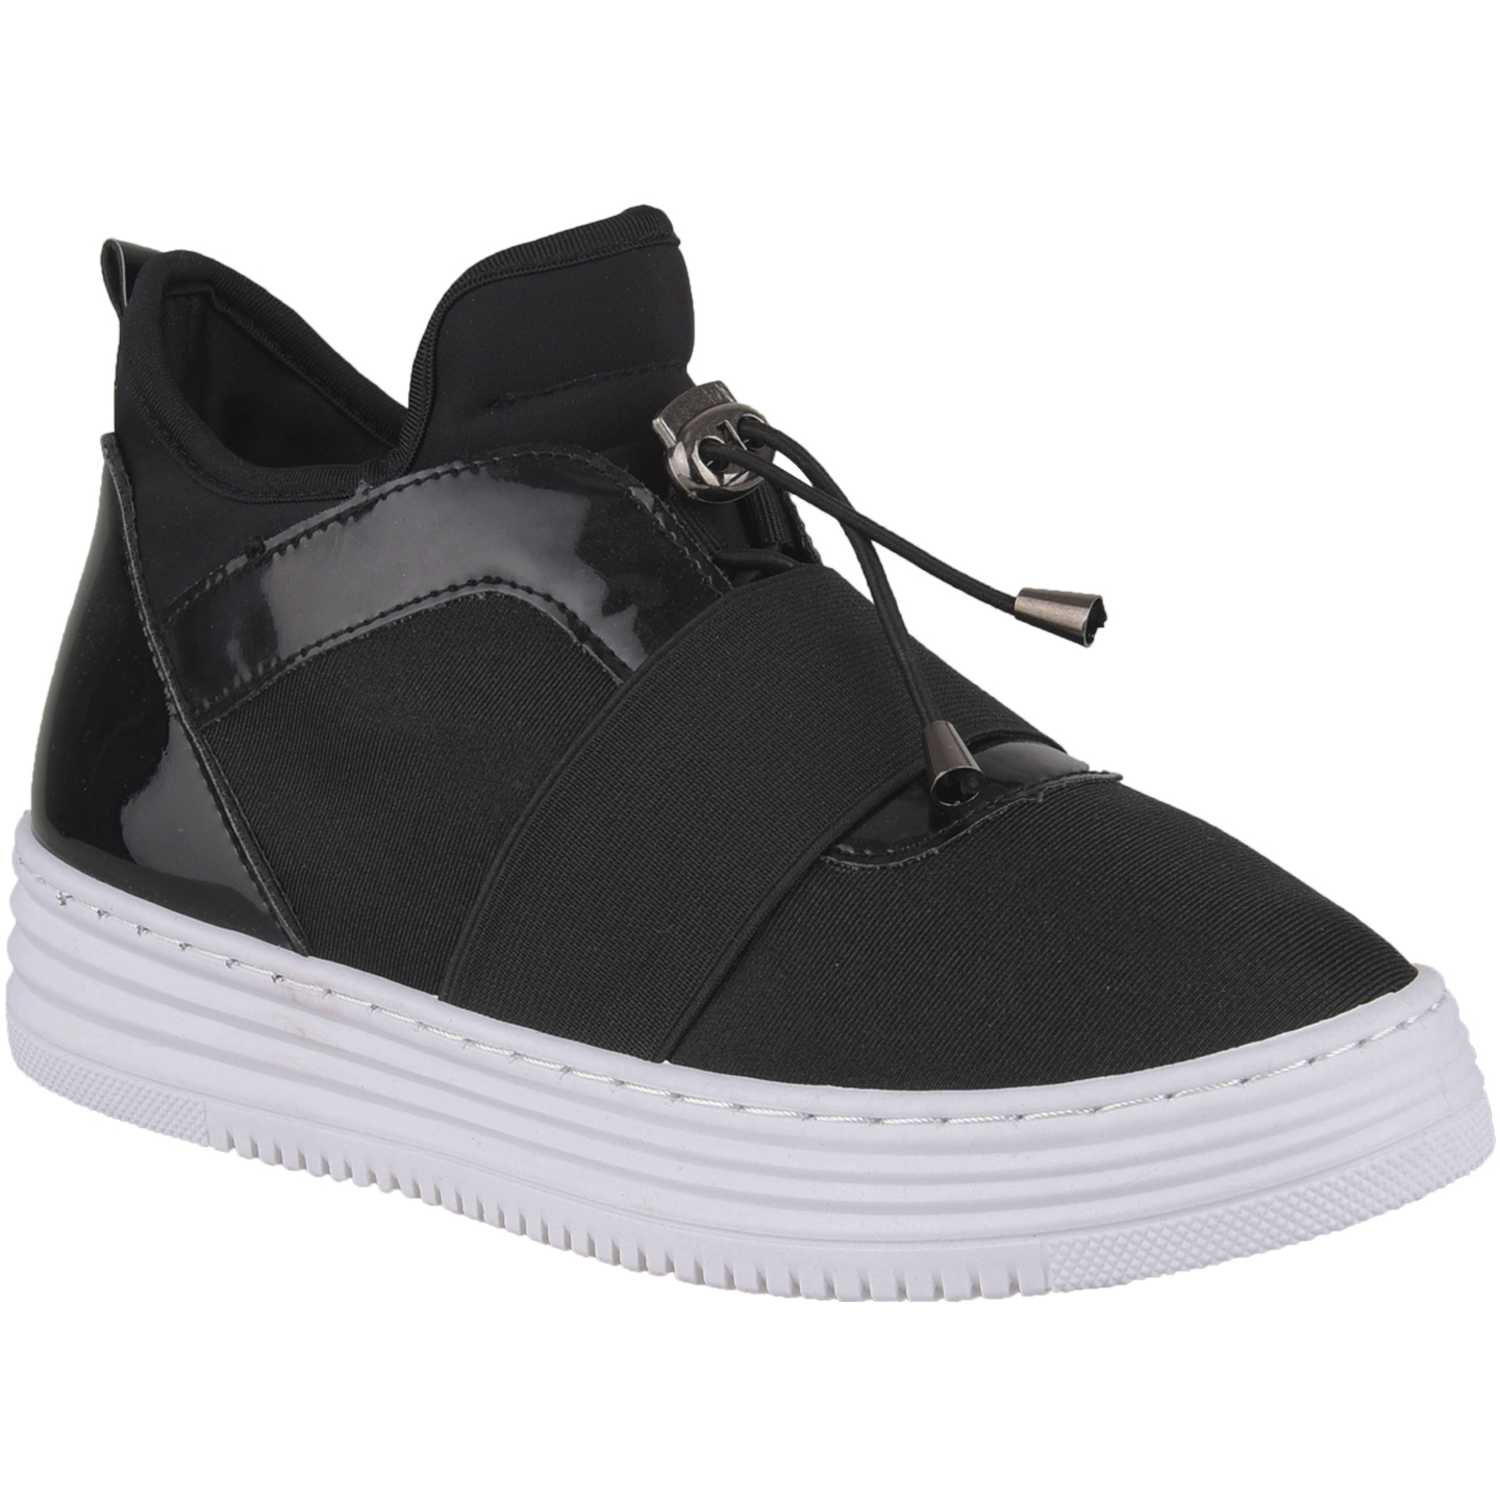 Just4u Zc 7c15 Negro Zapatillas Fashion